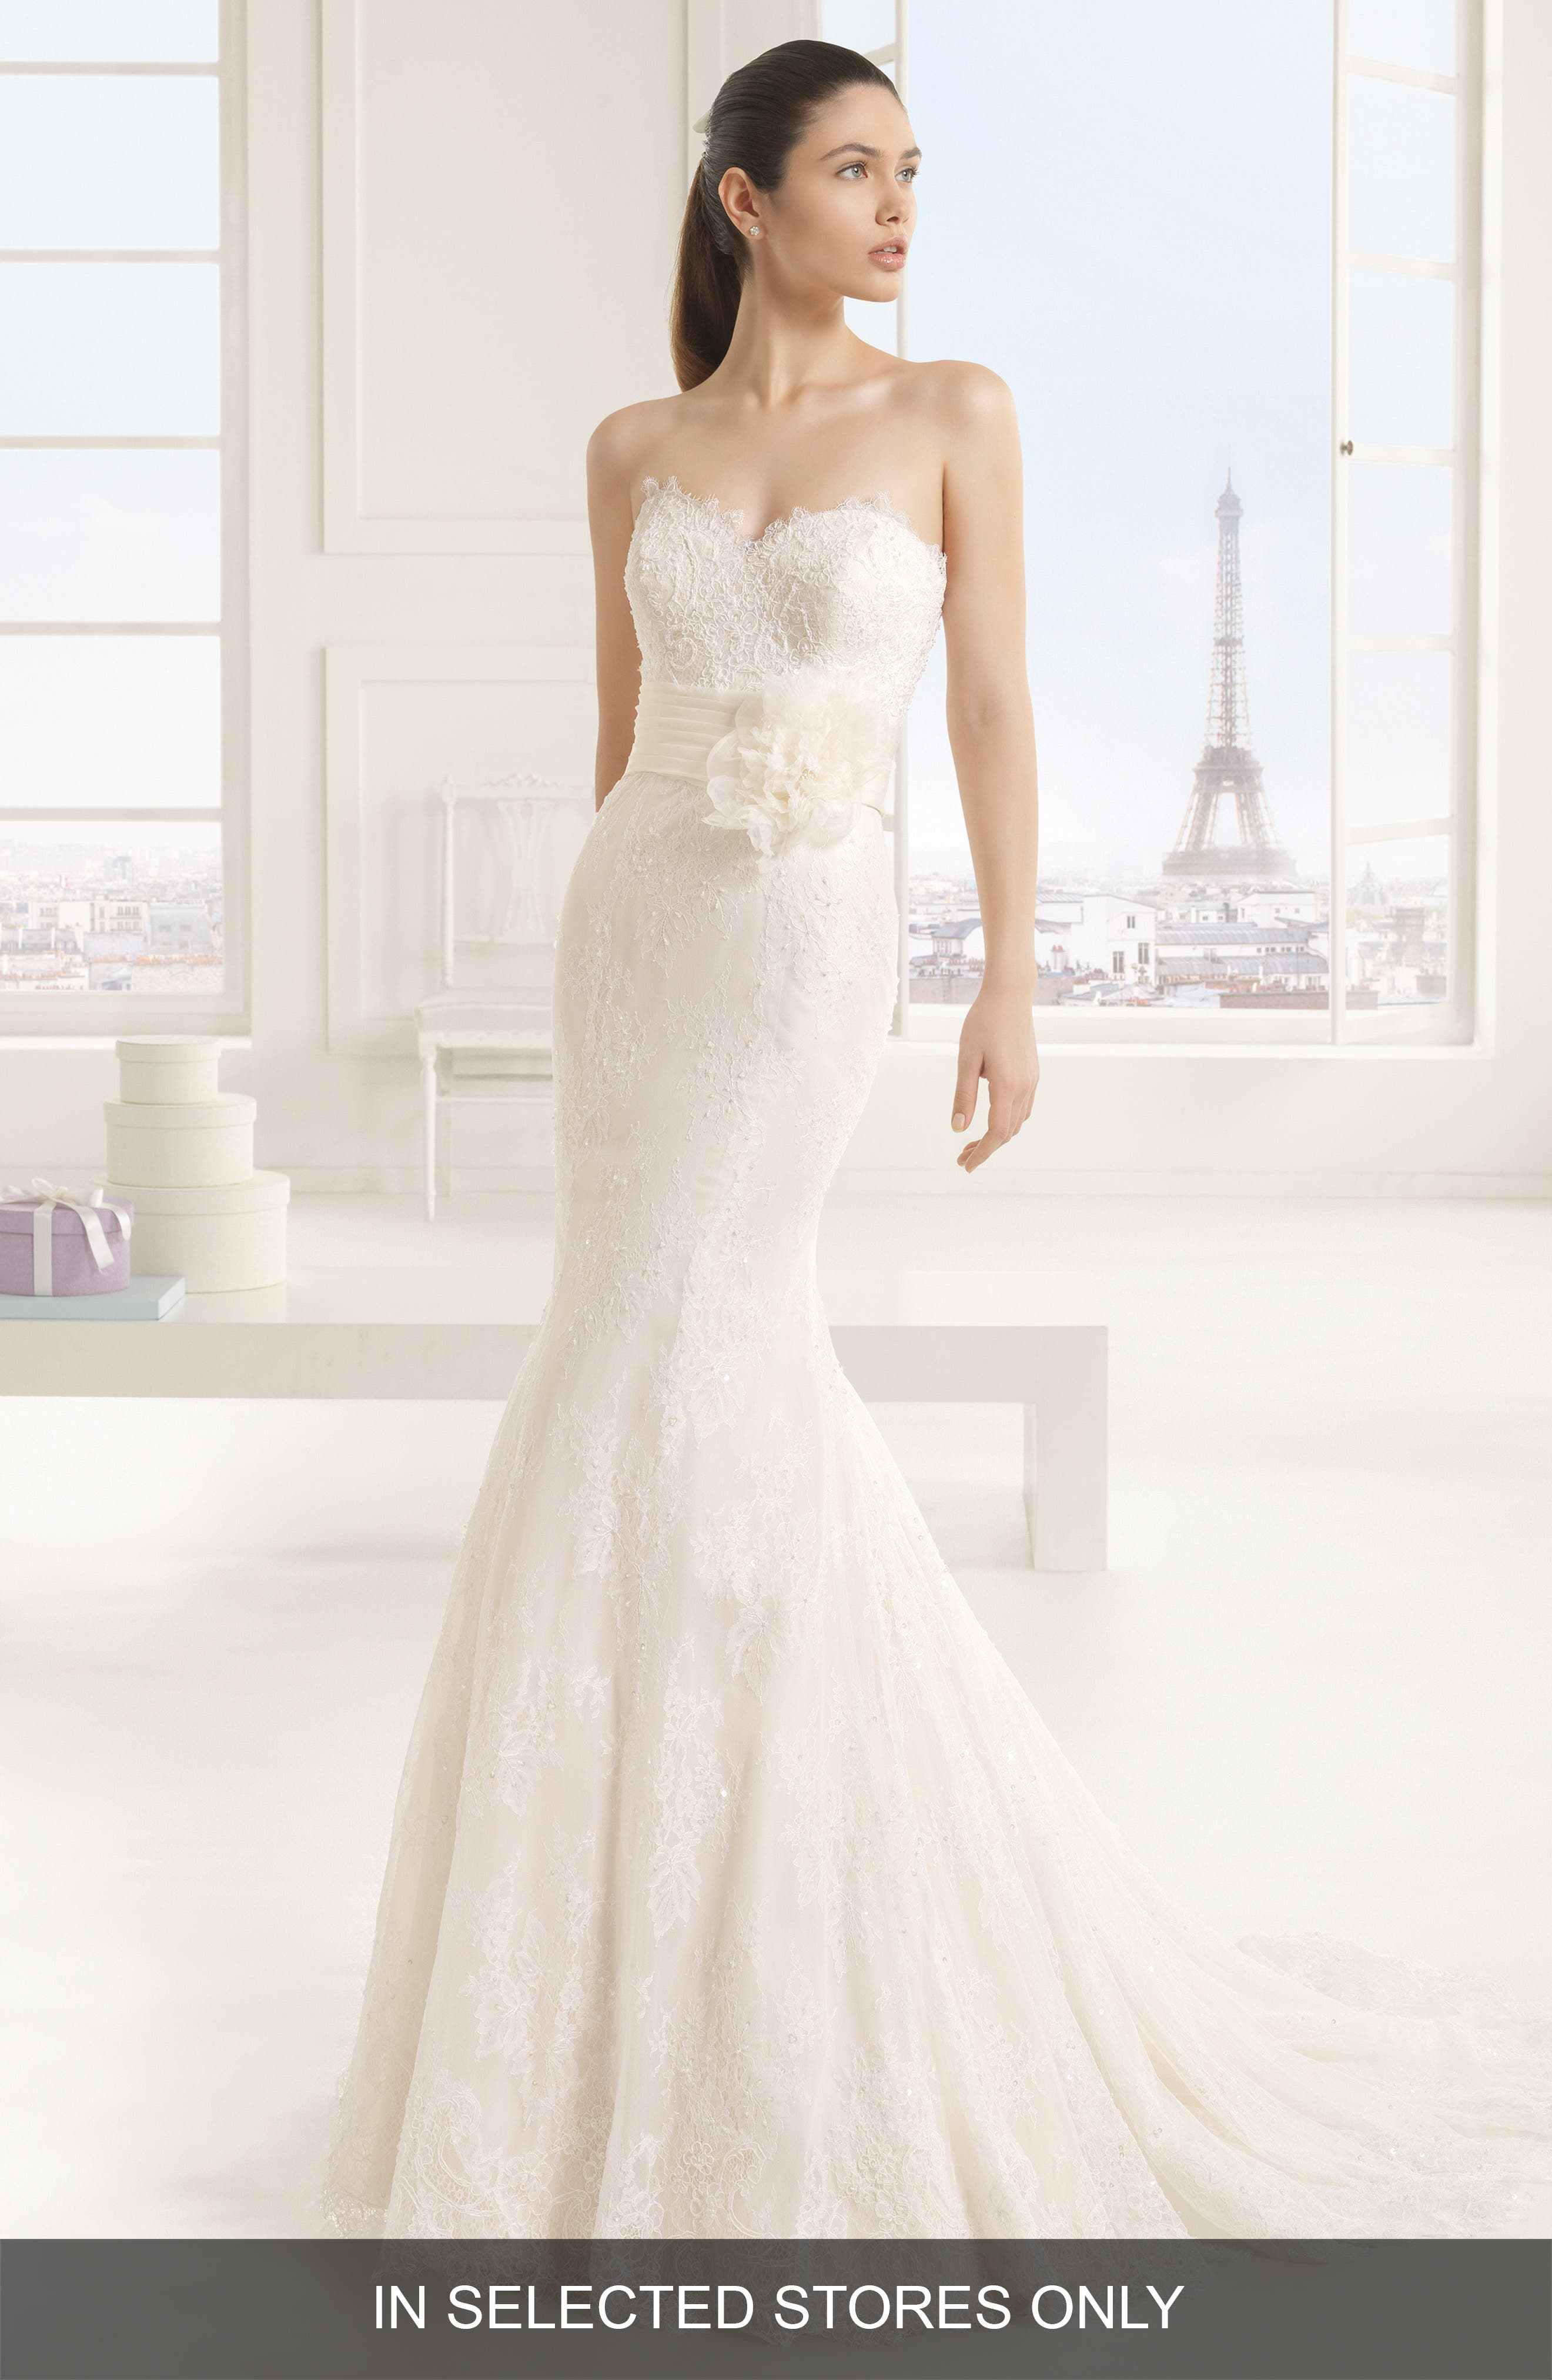 Alternate Image 1 Selected - Two by Rosa Clara Eva Strapless Beaded Lace Tulle Mermaid Dress